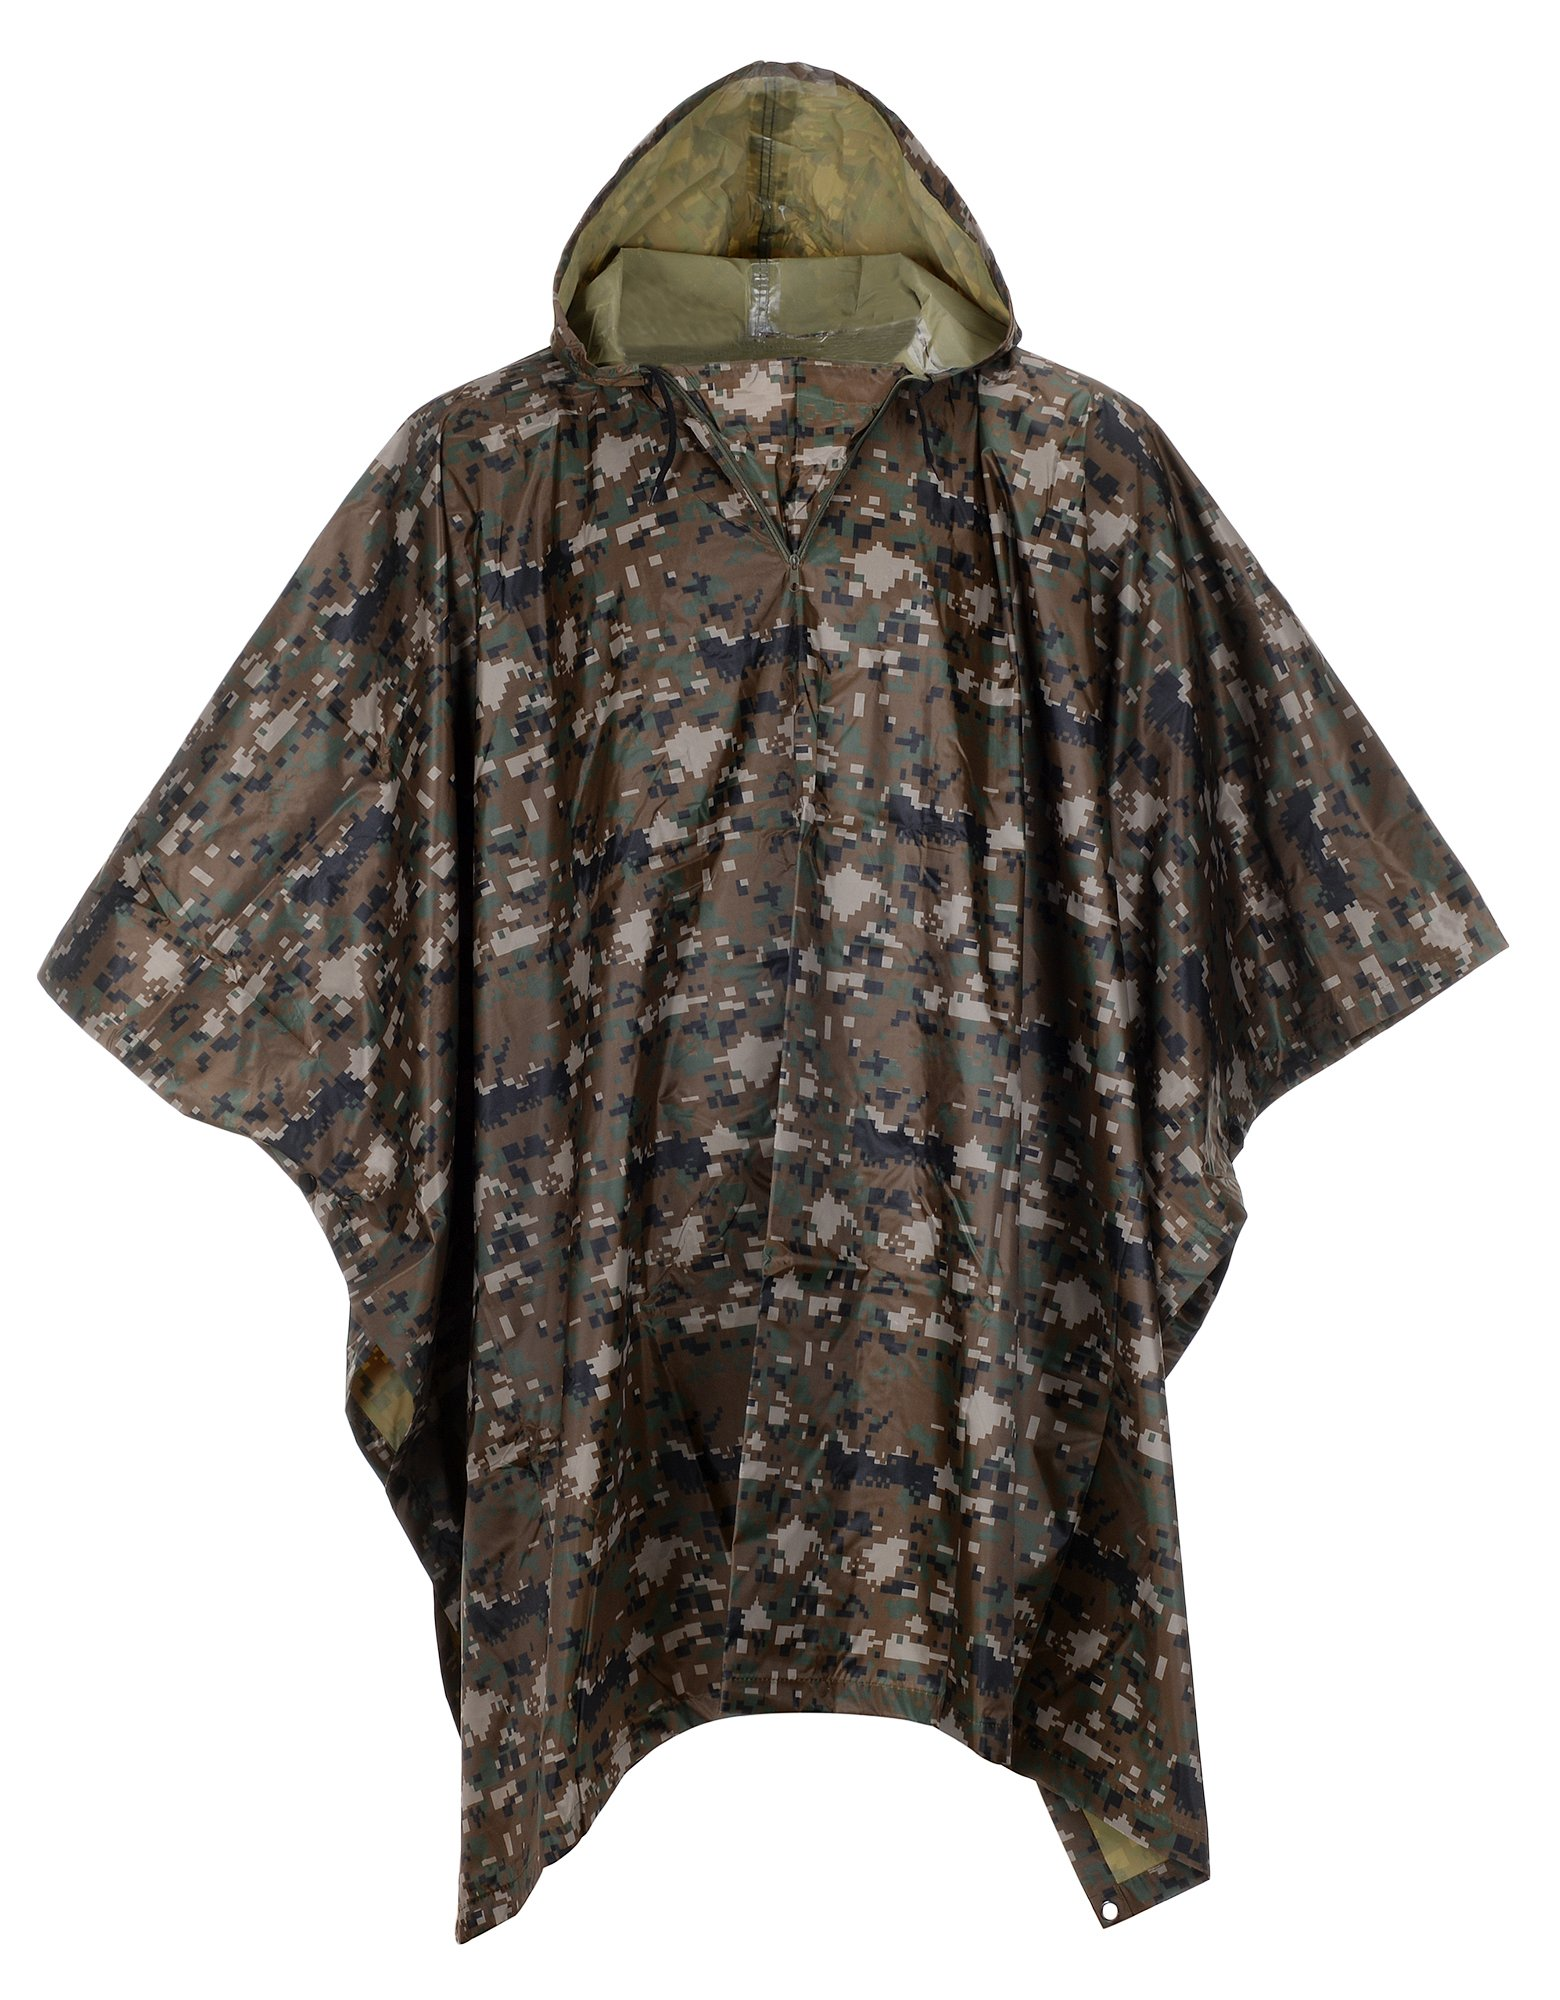 QZUnique Men Lightweight Outdoor Ripstop Waterproof Packable Travel Rain Poncho Camouflage Raincoat with Hood Pattern 2